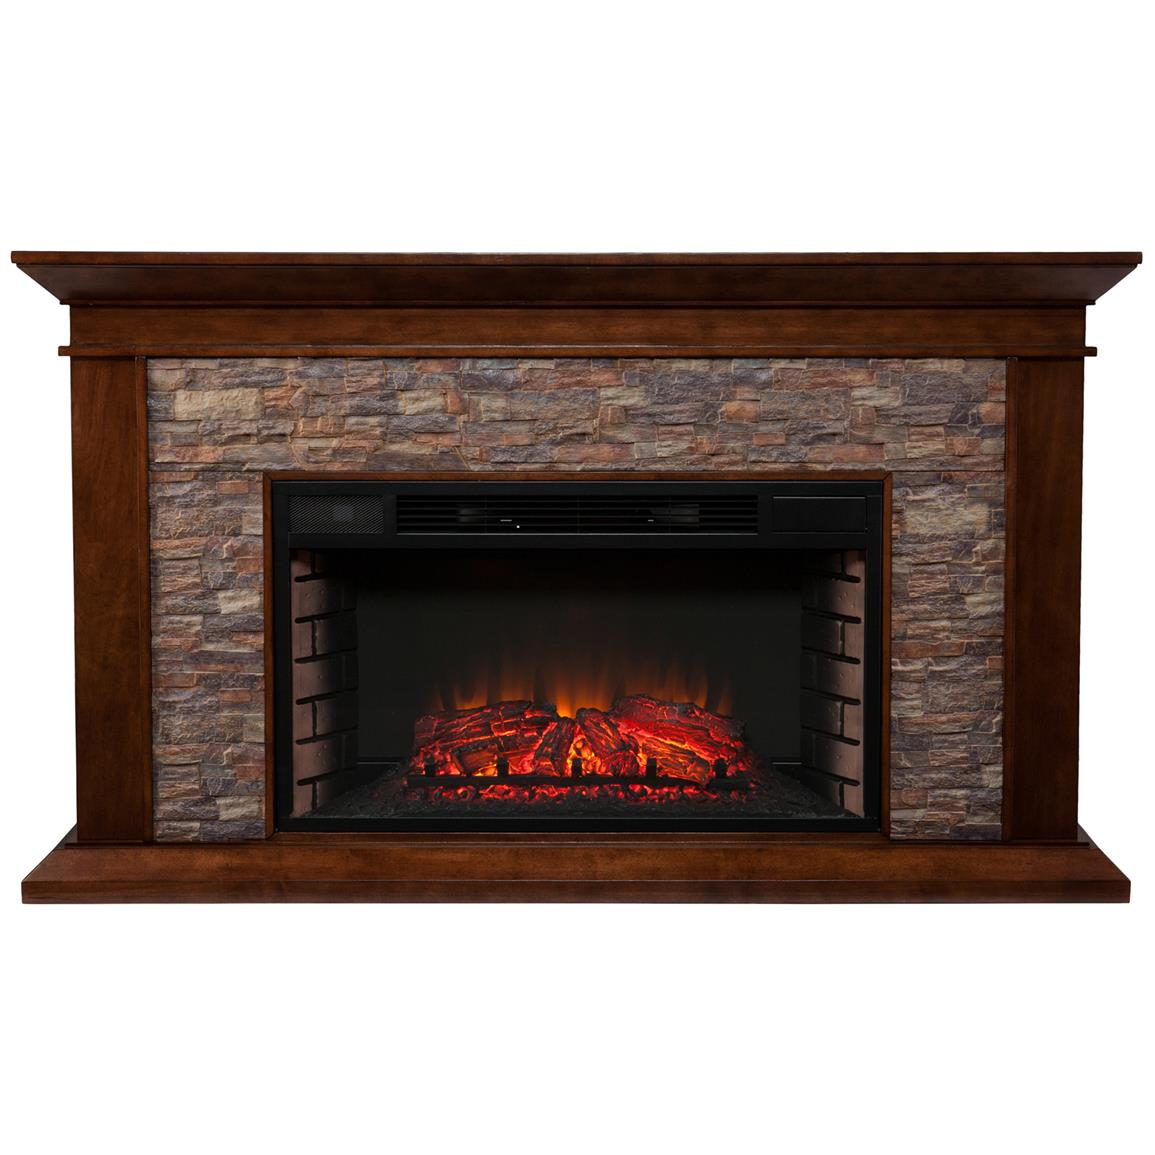 Southern Enterprises Canyon Heights Electric Fireplace, Whiskey Maple